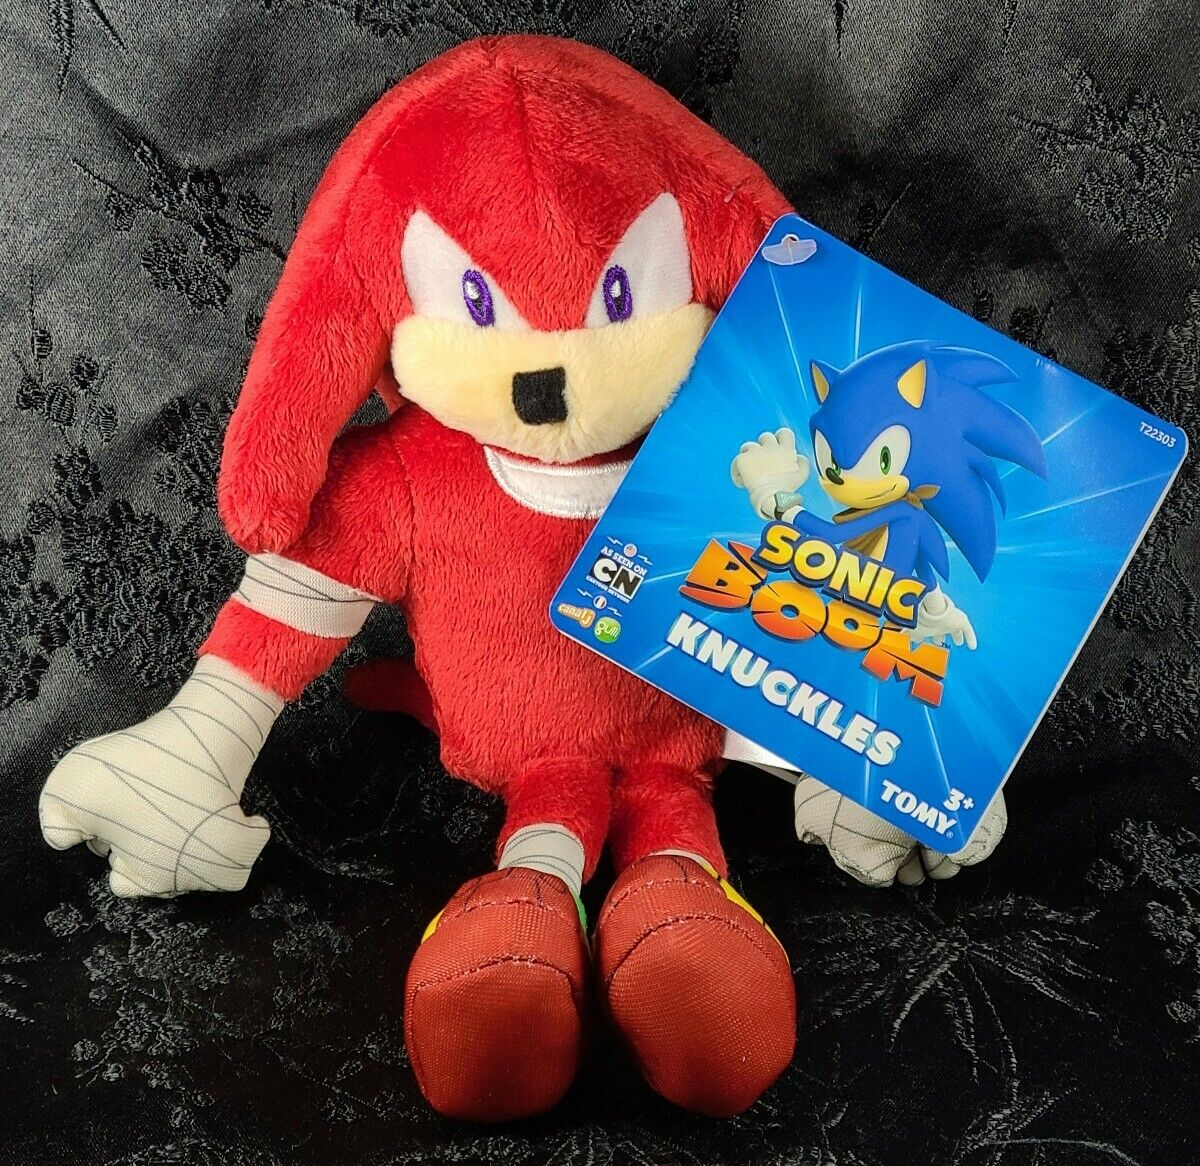 9 Tomy Plush Knuckles A Sonic The Hedgehog Sonic Boom Stuffed Animal Toy C Sega For Sale Online